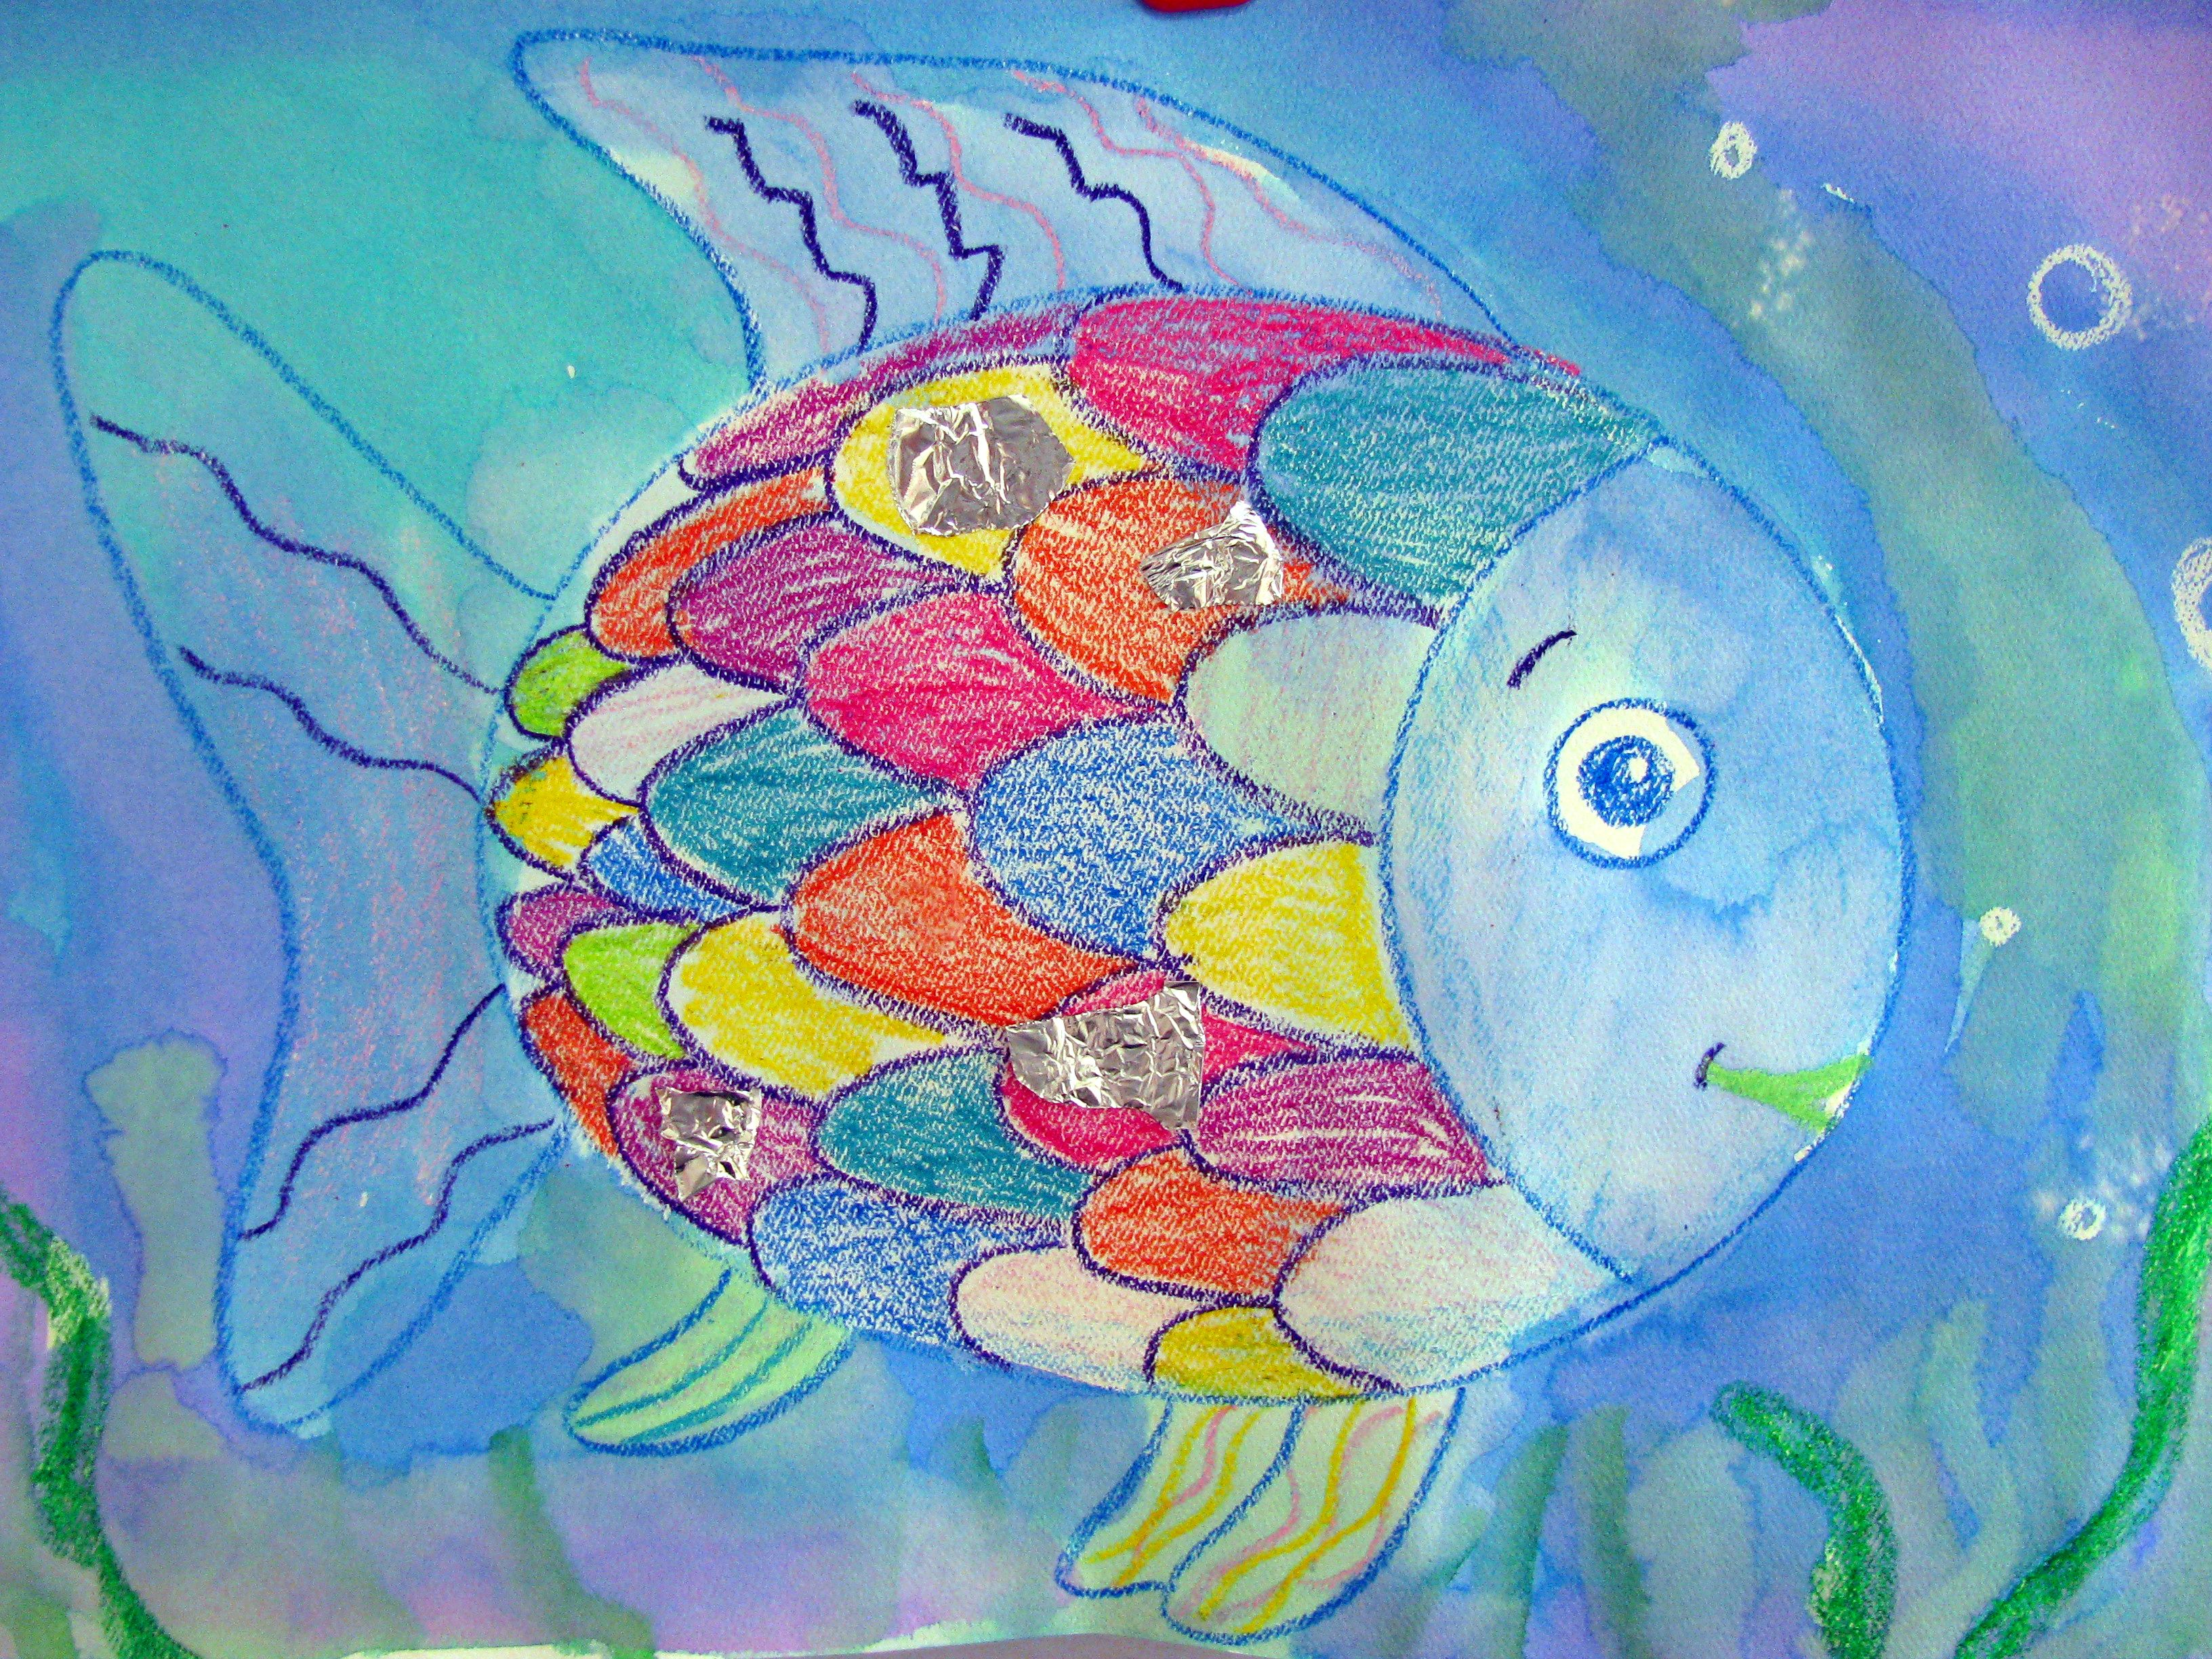 Cartoon fish coloring pages fish pouting fish sleepy cartoon fish - Rainbow Fish Mrs Bearden S Art Room